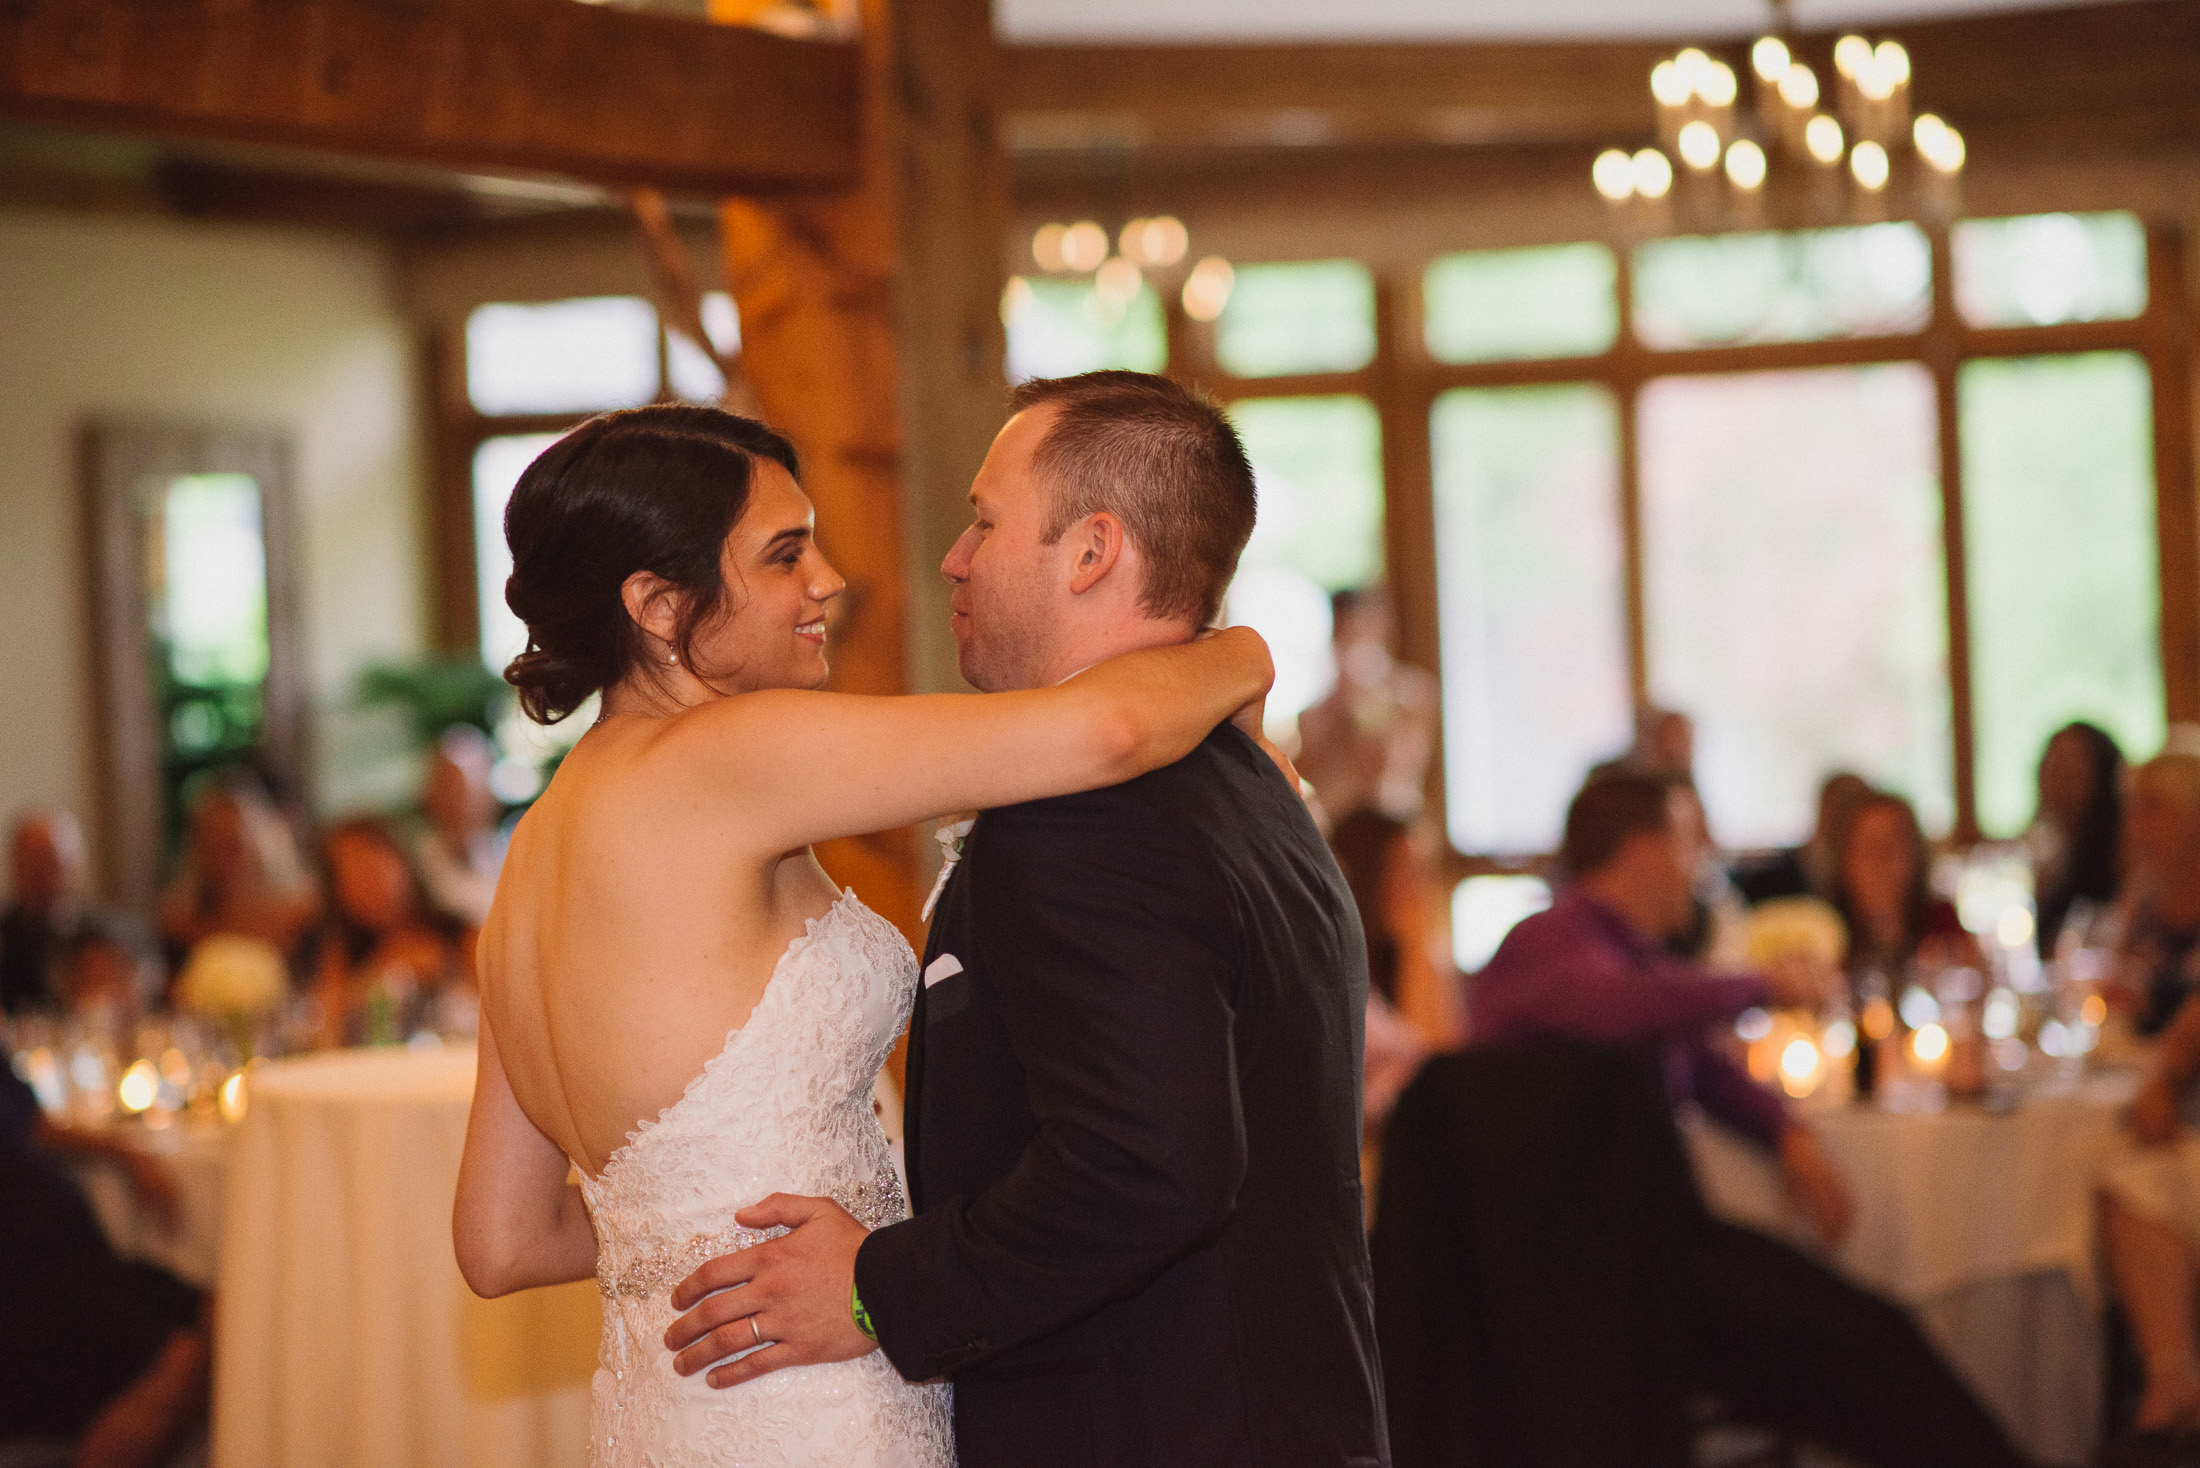 NH Wedding Photography: couple's first dance